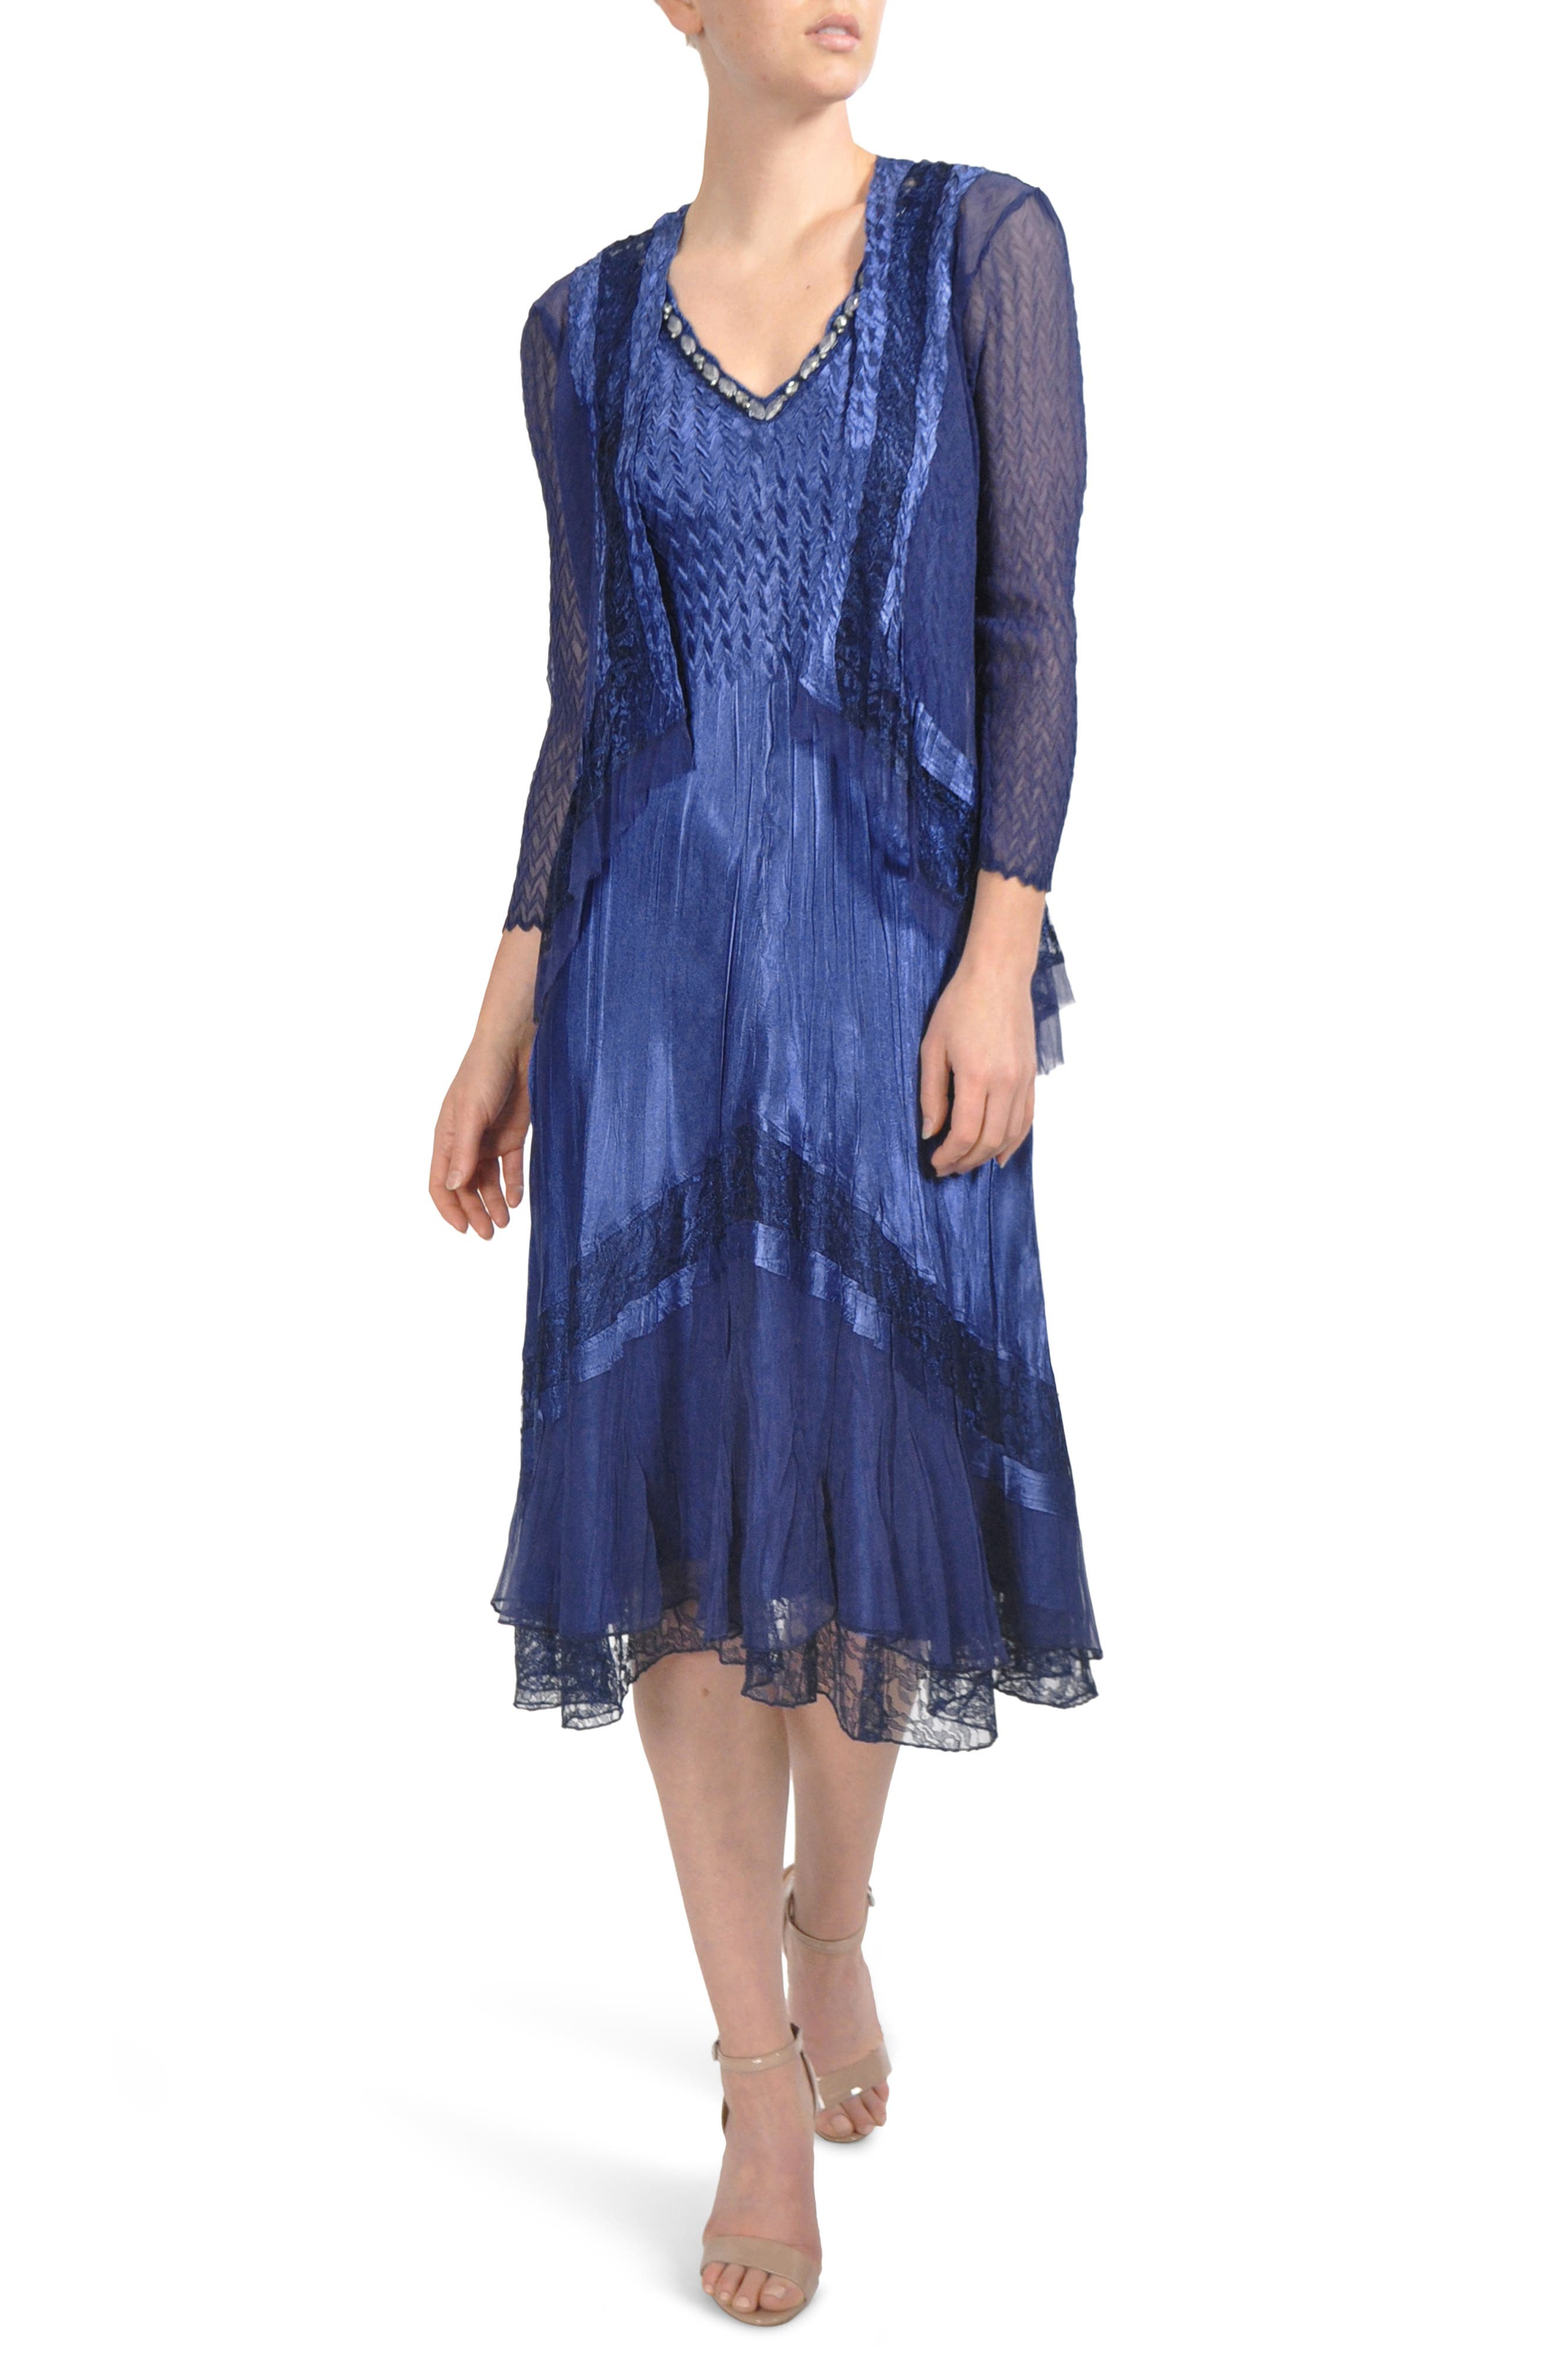 Embellished Lace Trim Dress with Jacket,                             Main thumbnail 1, color,                             Navy Black Ombre